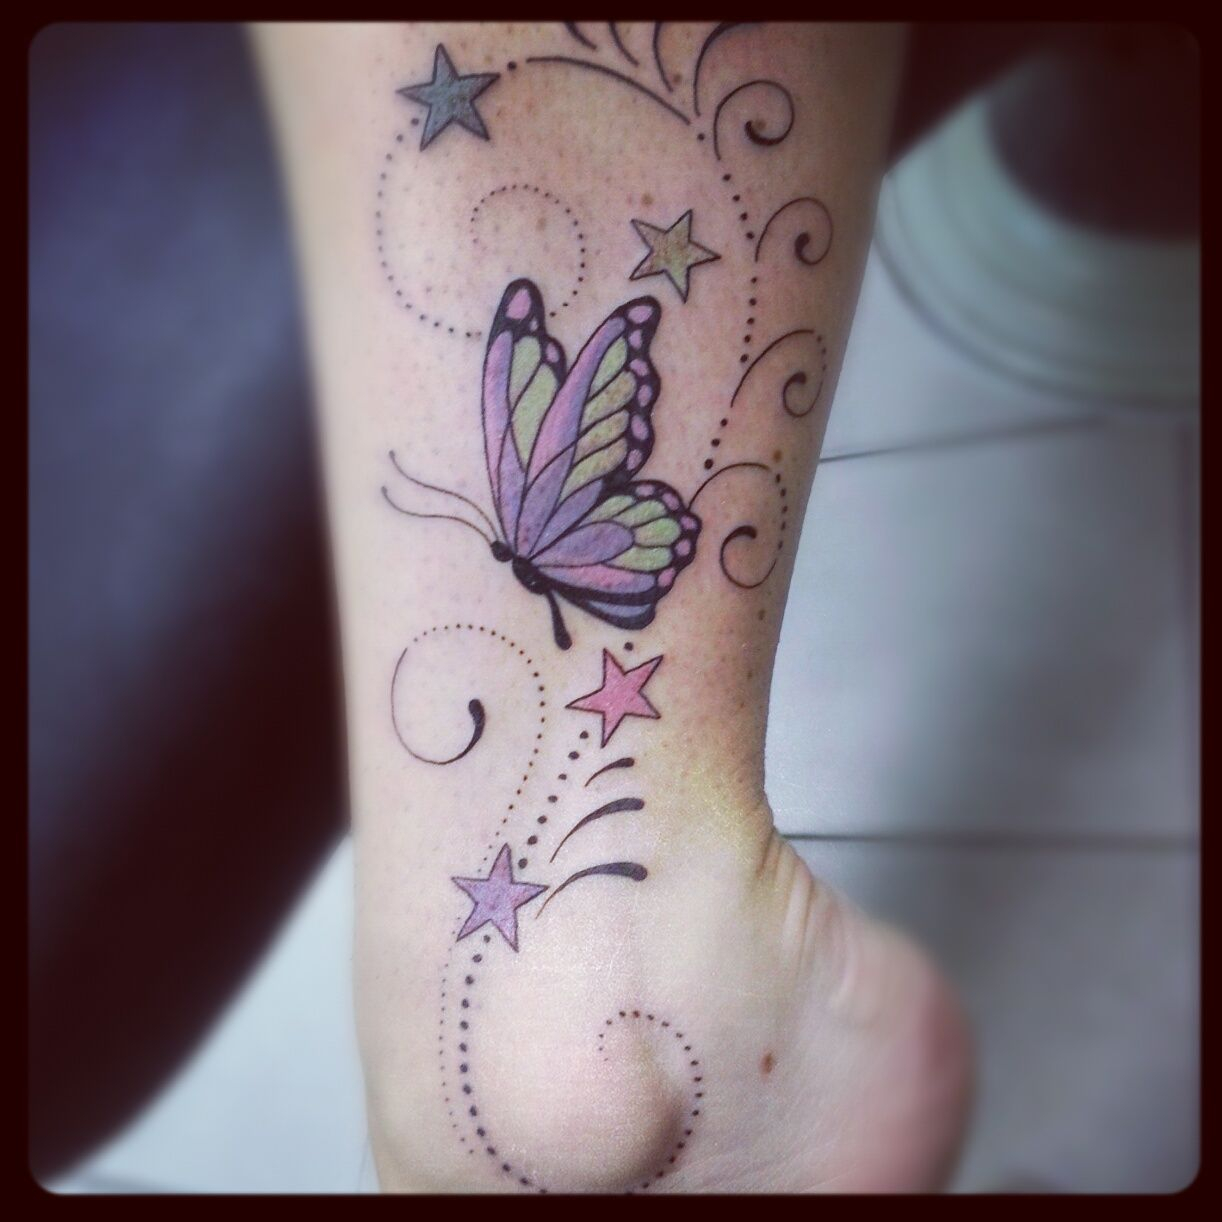 Wonderful Swirly Star Butterfly Tattoo On Ankle Tattoos Tattoos pertaining to sizing 1222 X 1222